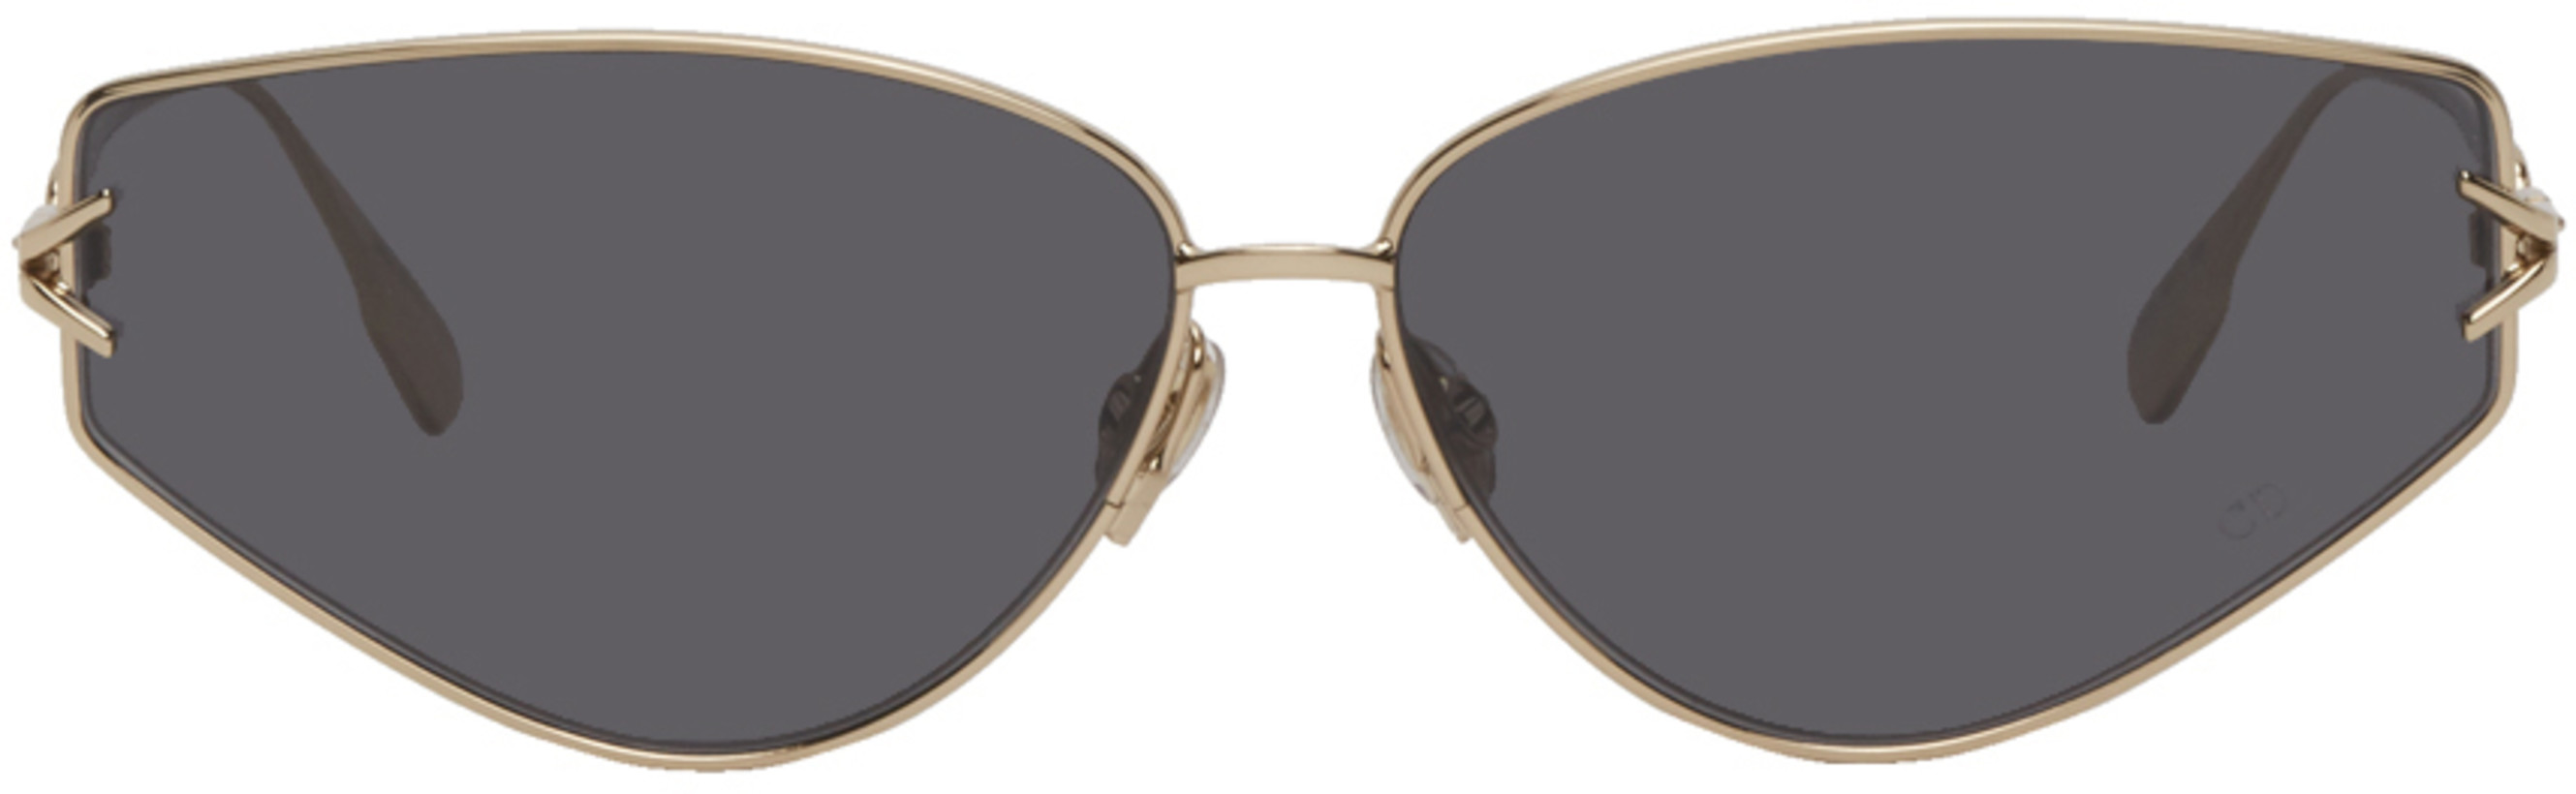 Dior Gold & Grey DiorGipsy2 Sunglasses